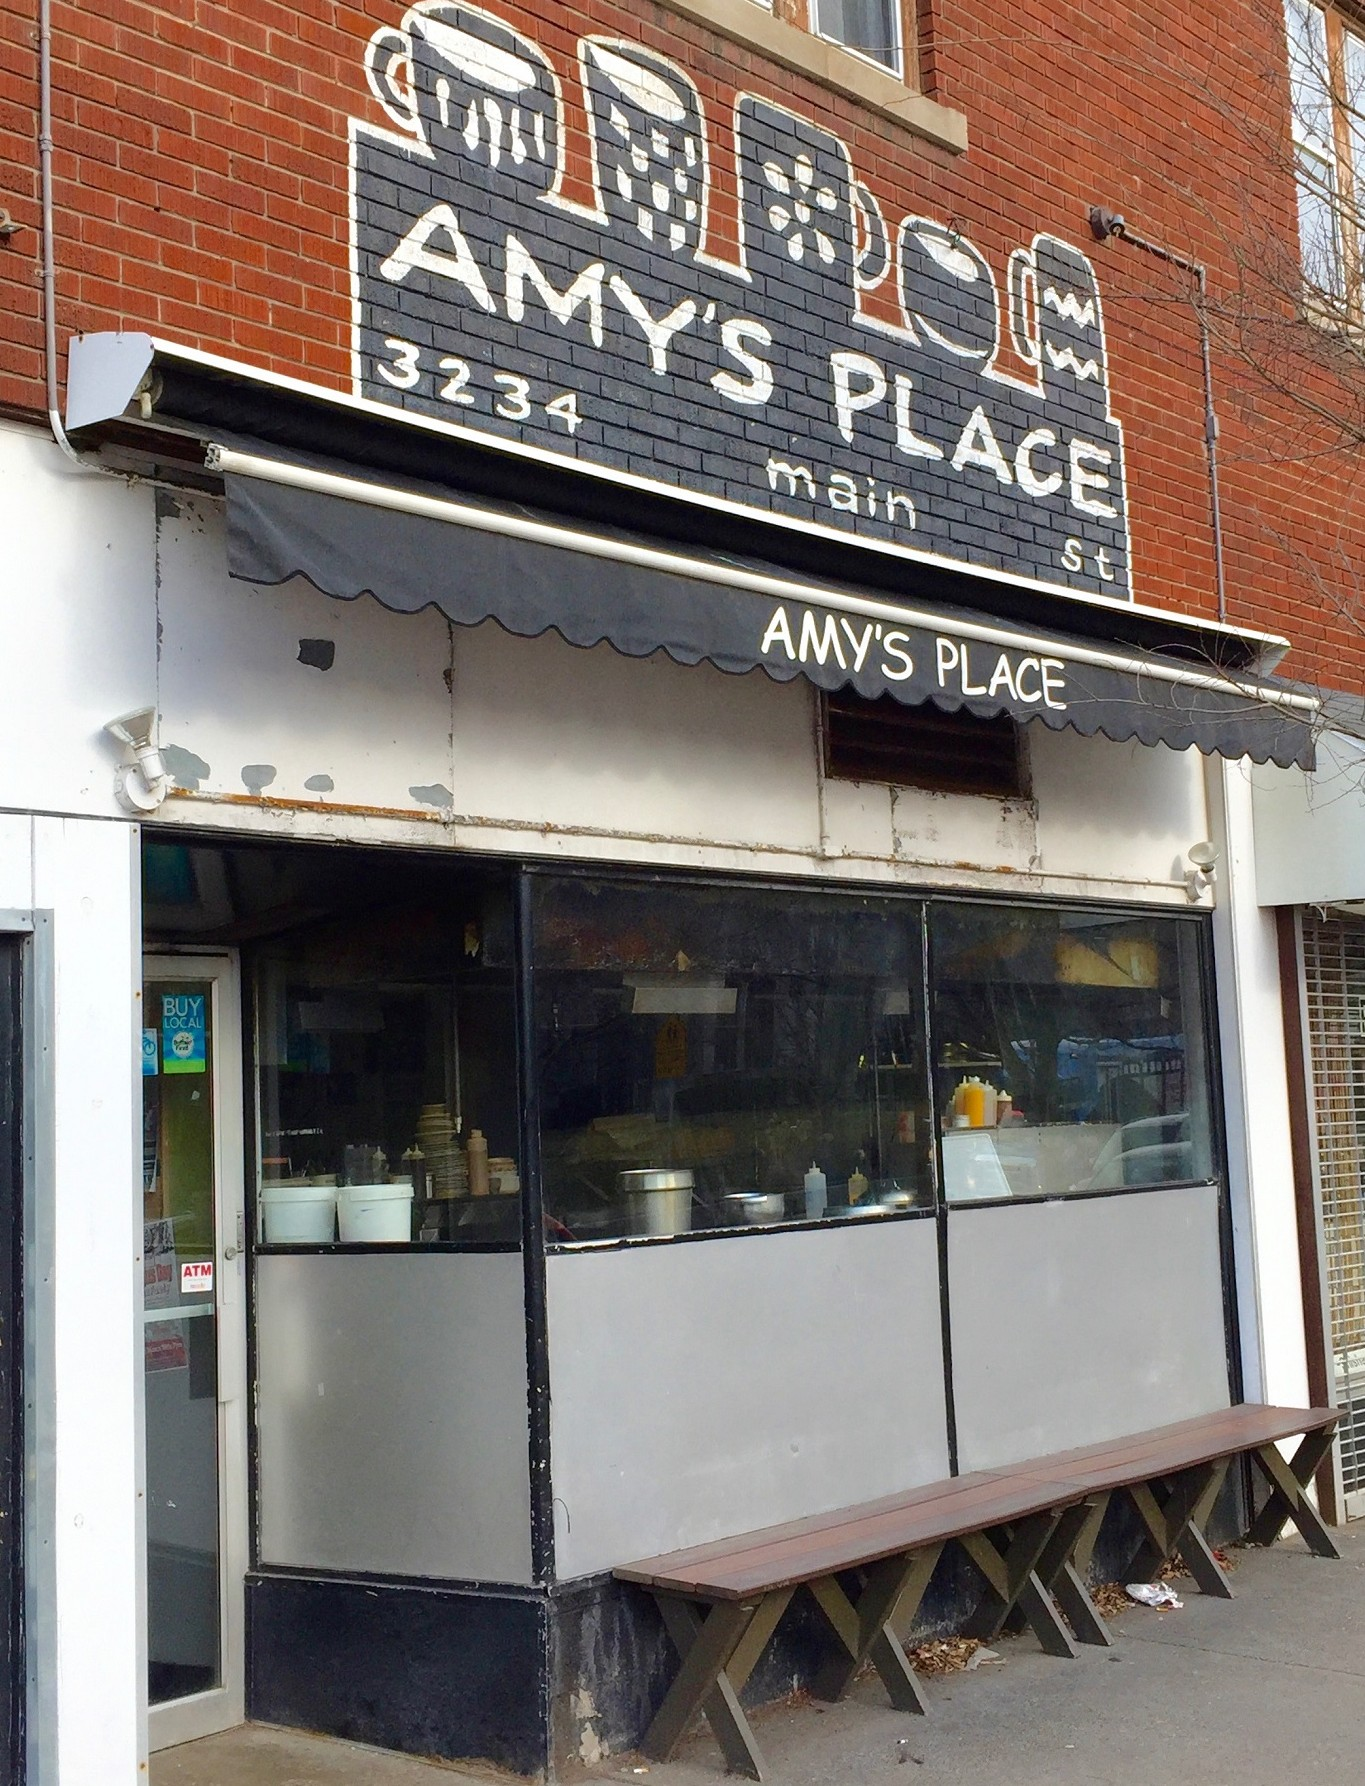 The exterior of Amy's Place at 3234 Main St. (Alex Mikol/Special to The News)